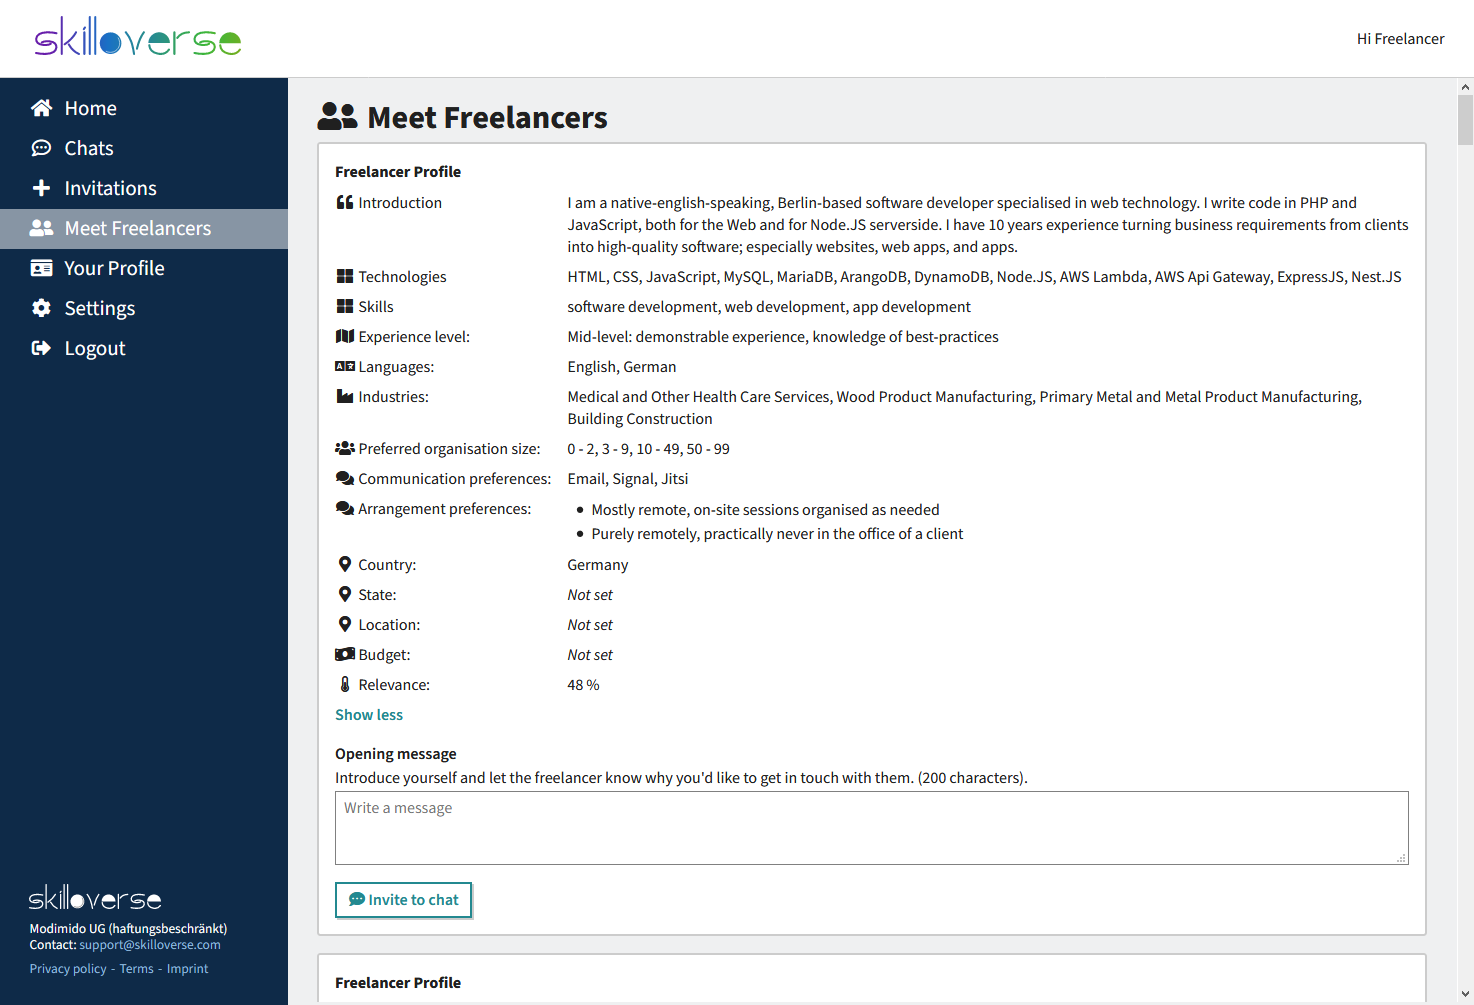 Screenshot showing Meet Freelancers capability of Skilloverse